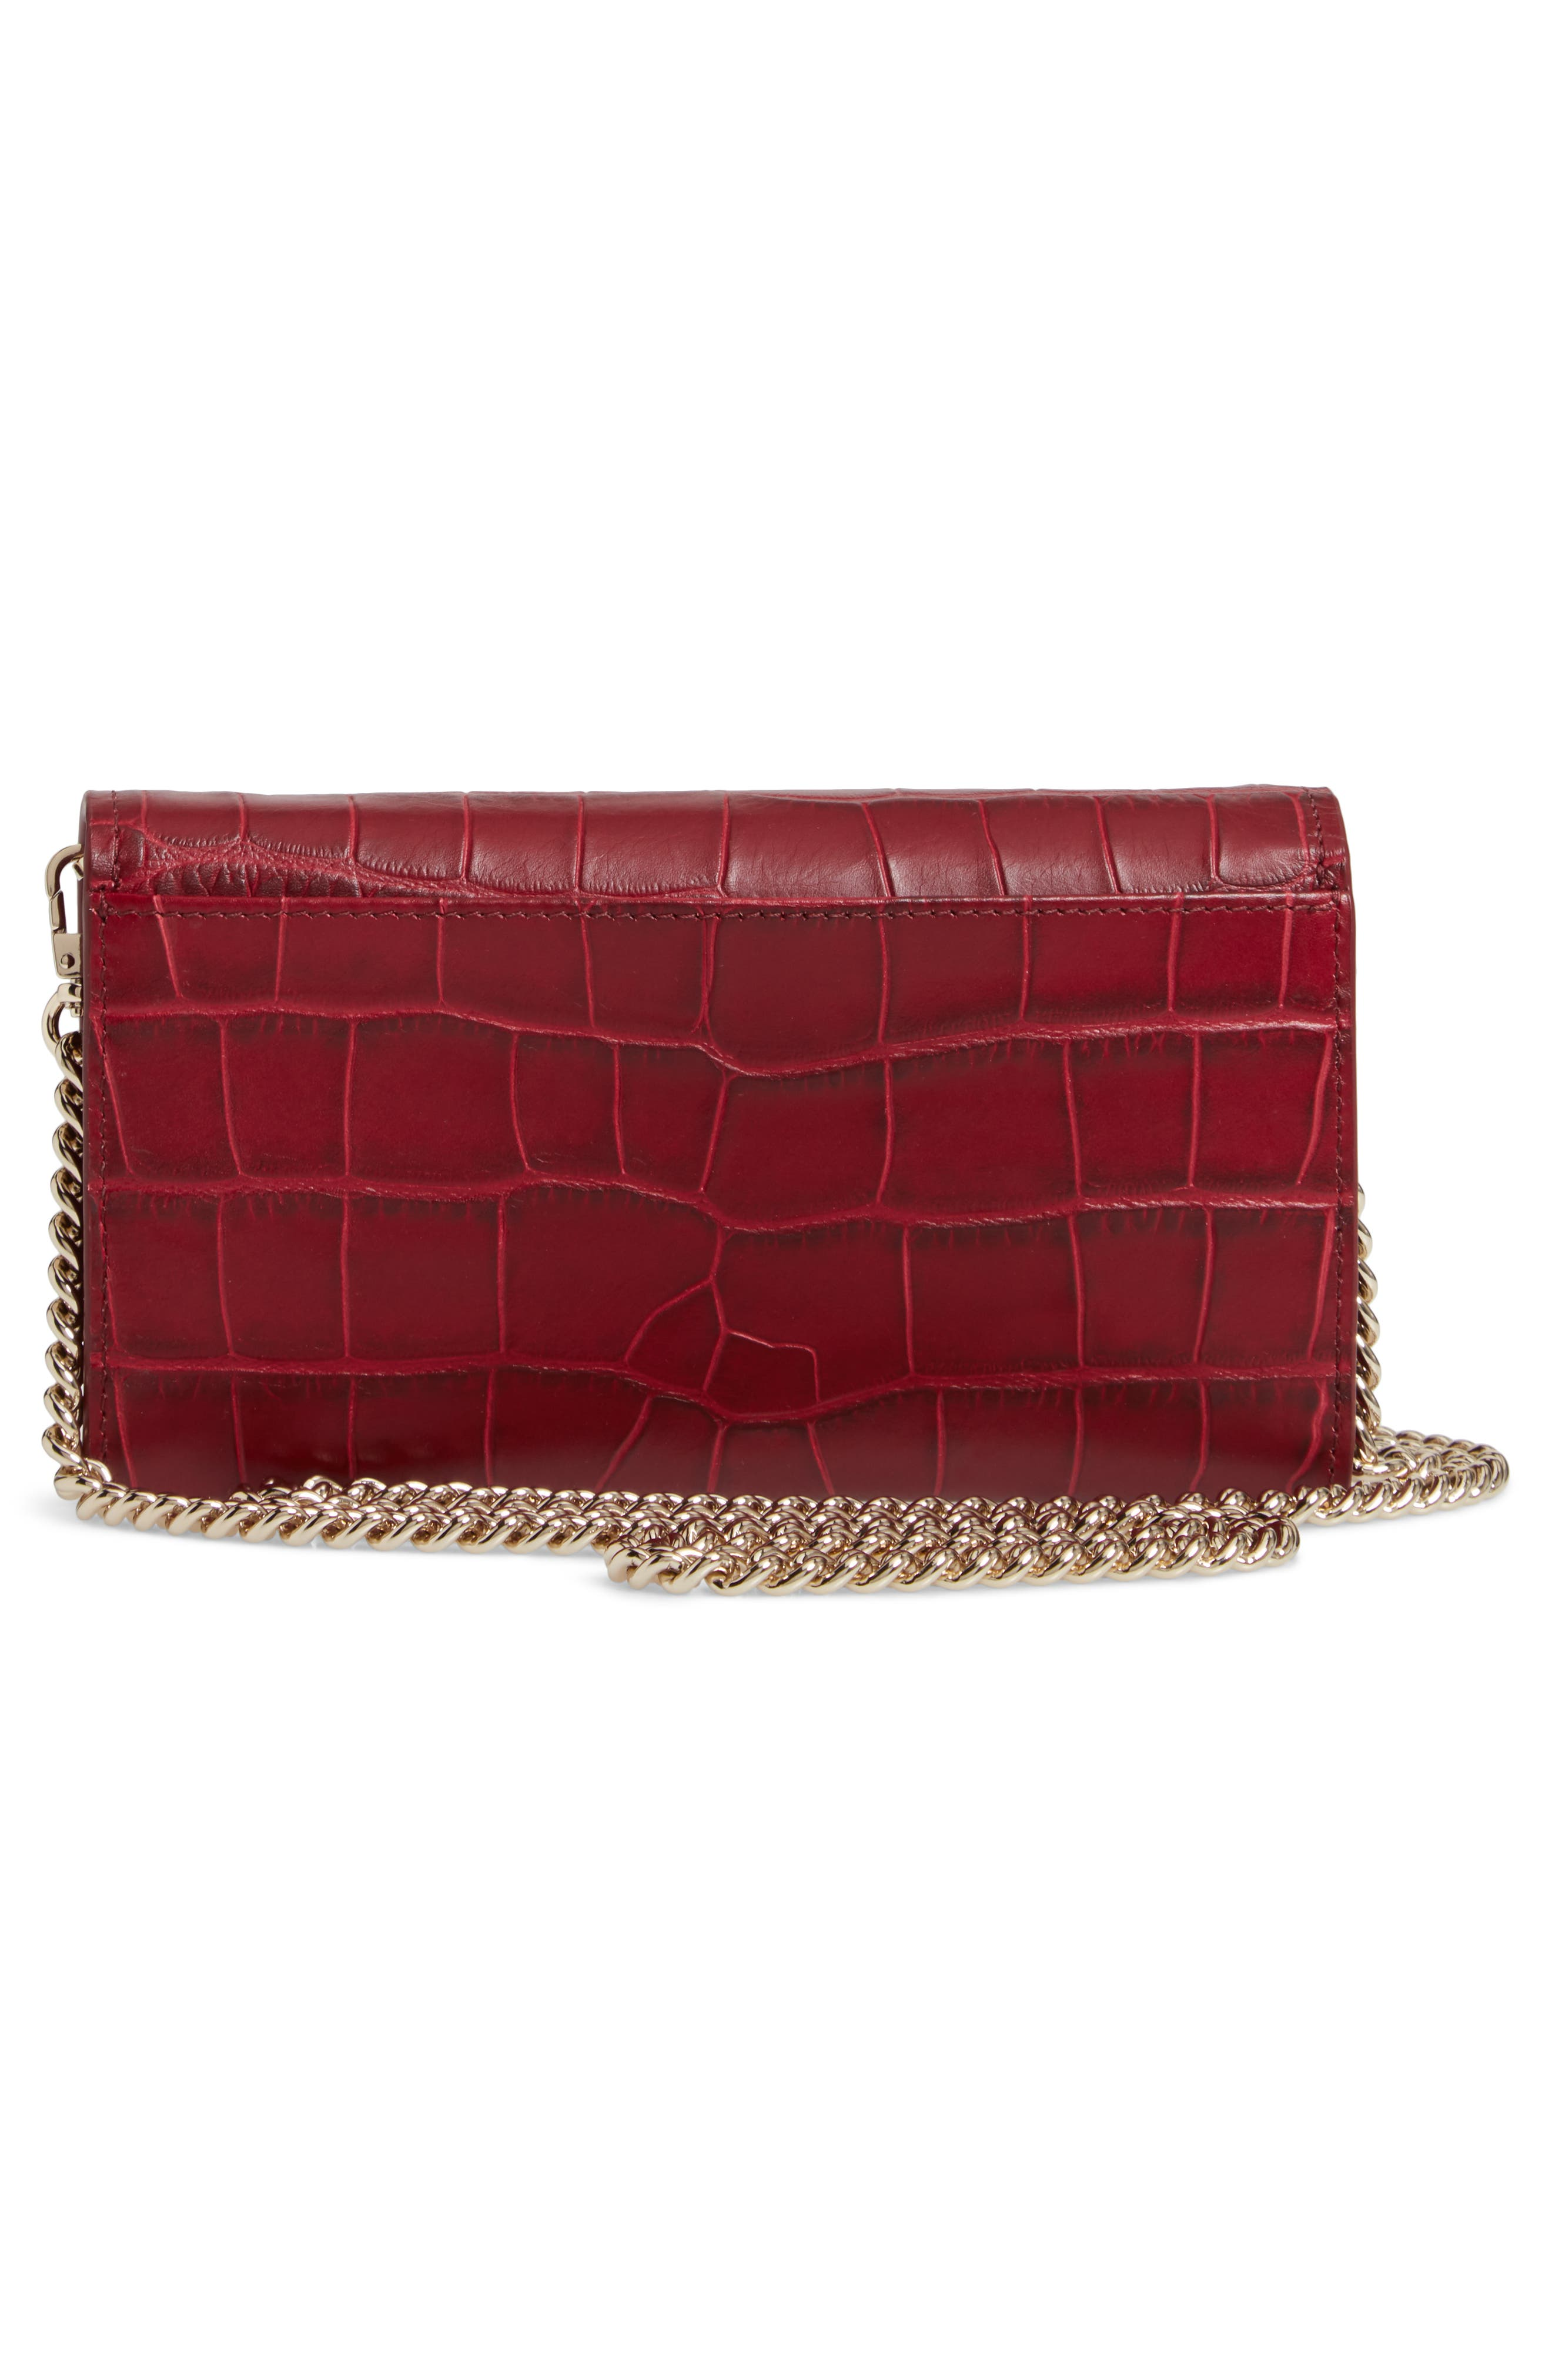 murray street luxe franny leather wallet on a chain,                             Alternate thumbnail 3, color,                             CHILI PEPPER